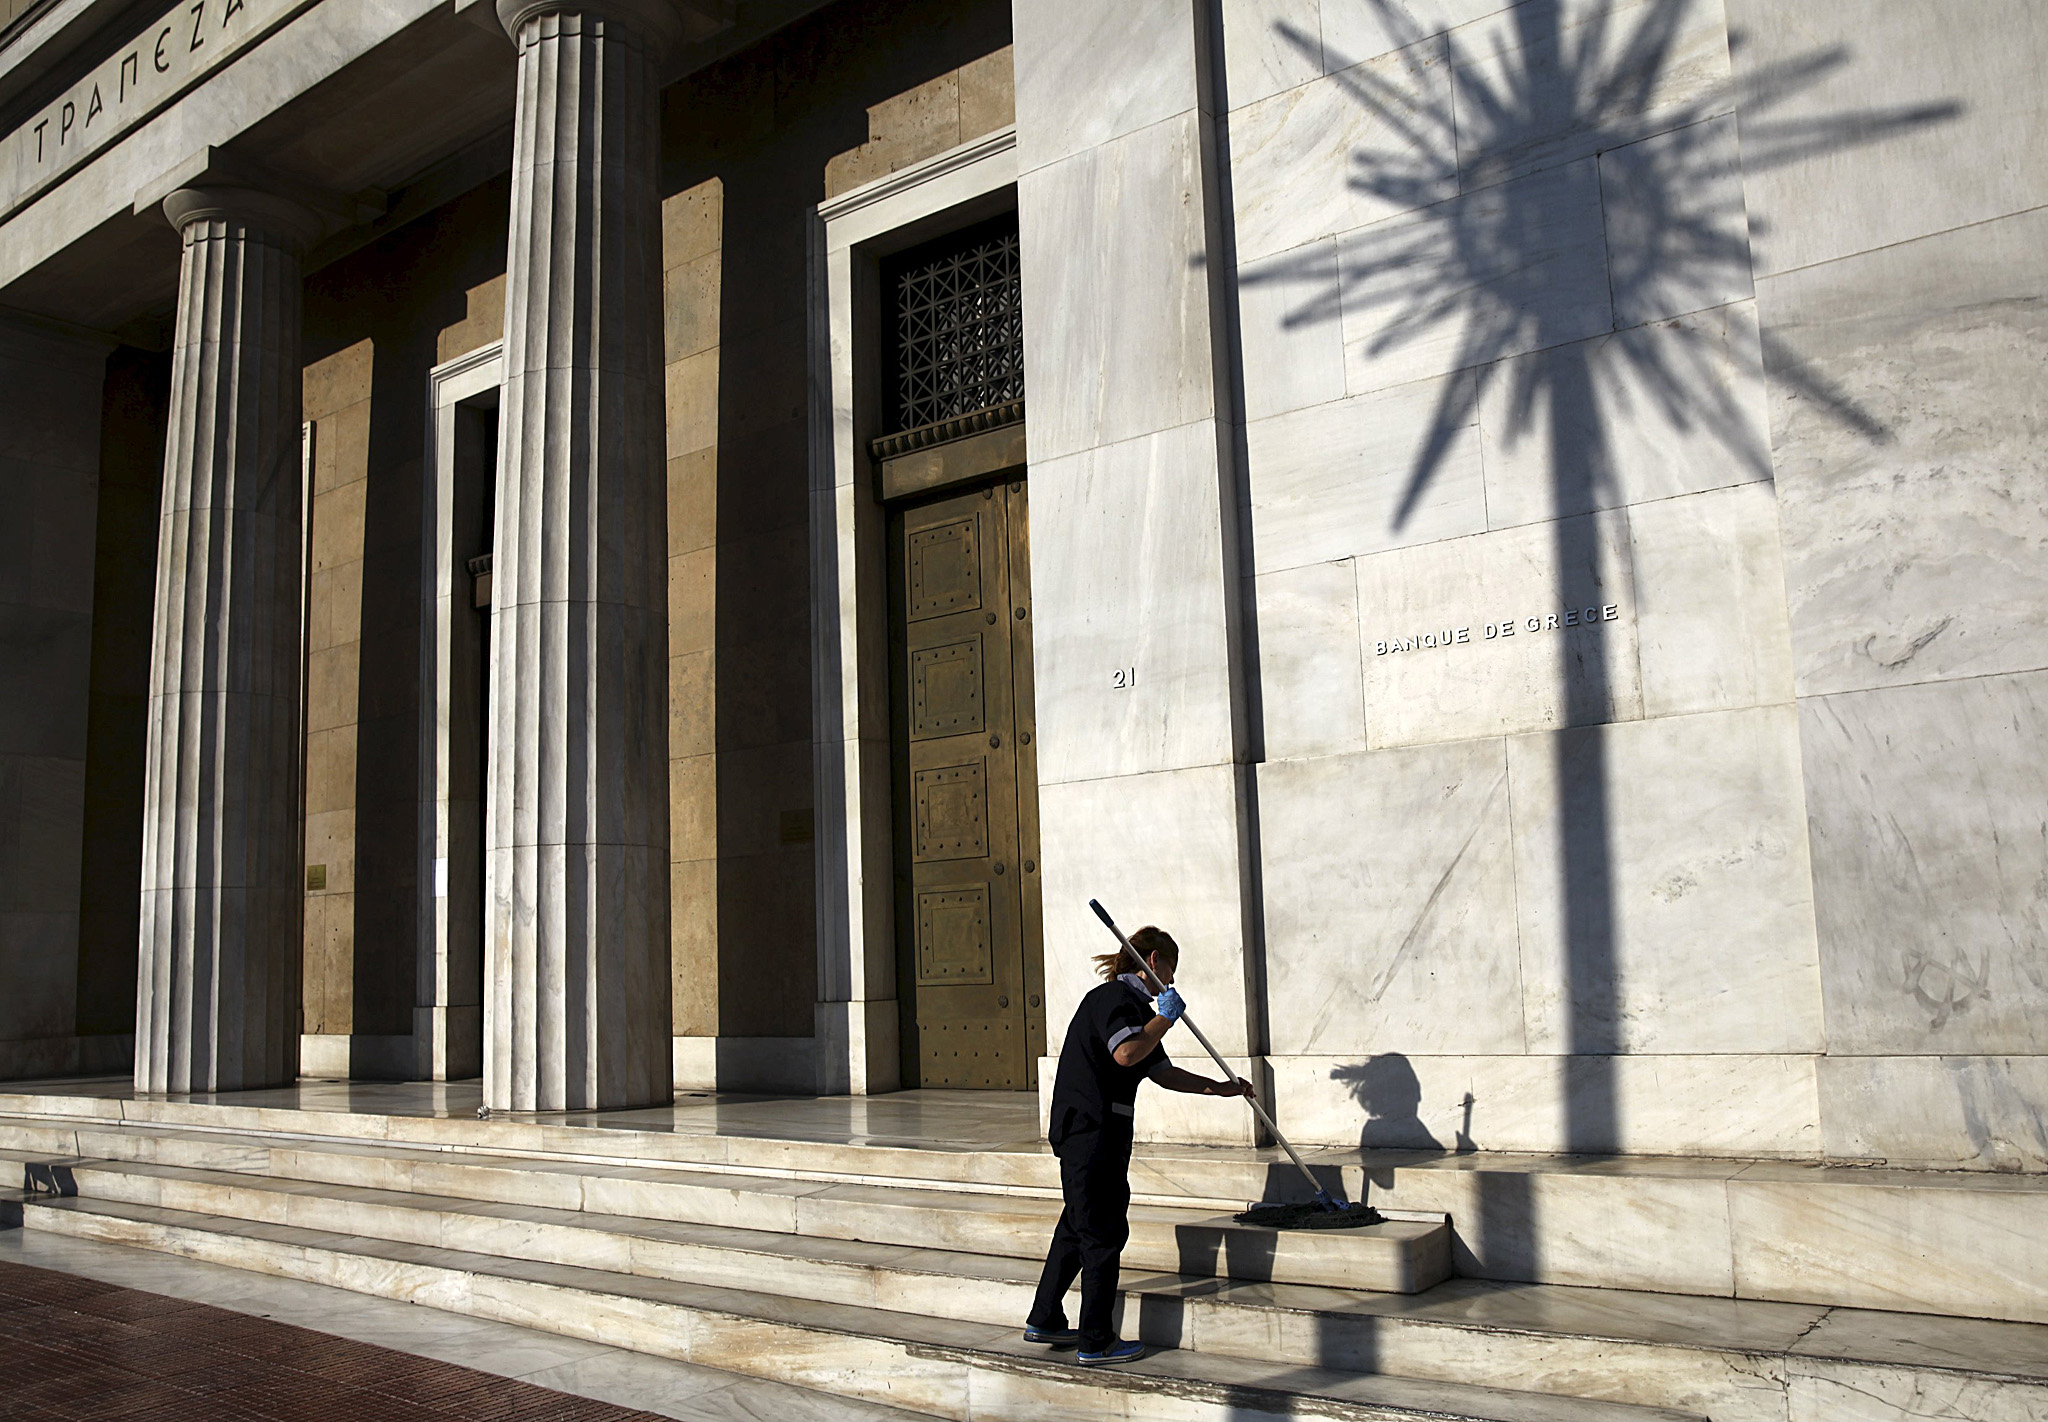 A cleaning lady mops the steps at the main entrance of the Bank of Greece headquarters in Athens...A cleaning lady mops the steps at the main entrance of the Bank of Greece headquarters in Athens, Greece  July 15, 2015. Greek banks will remain closed through to Thursday, the finance ministry said ahead of a parliamentary vote over tough austerity measures demanded by Greece's creditors in return for a third bailout.  REUTERS/Yiannis Kourtoglou